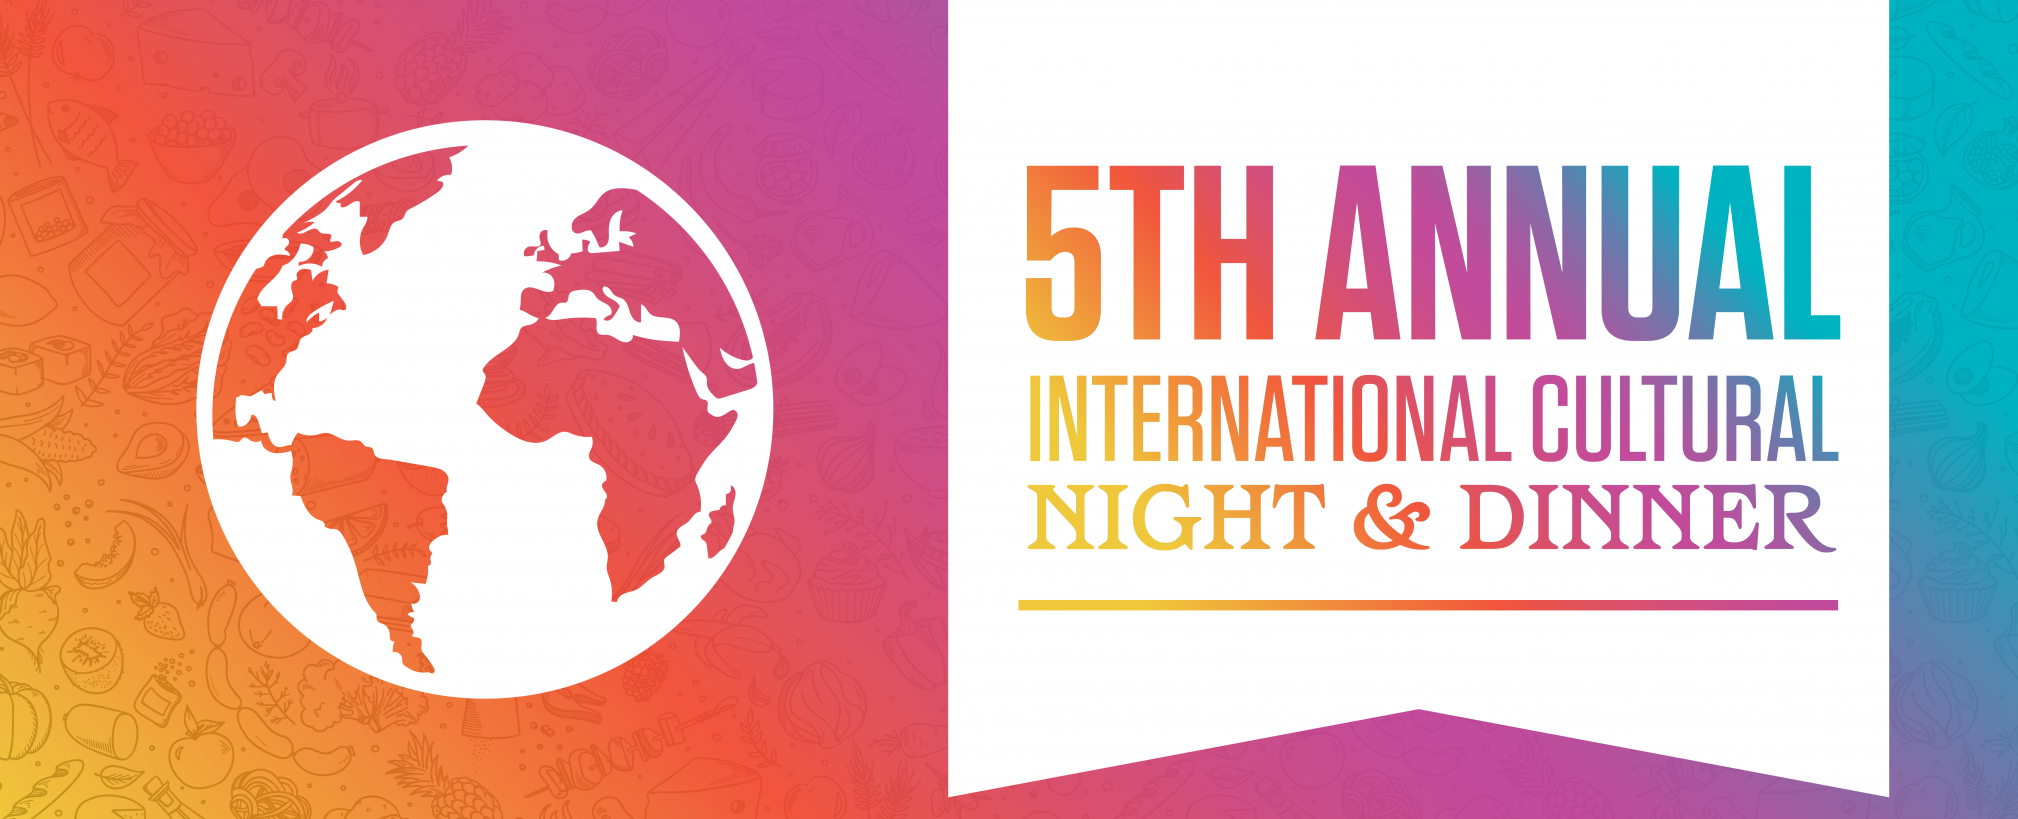 5th Annual International Cultural Night & Dinner